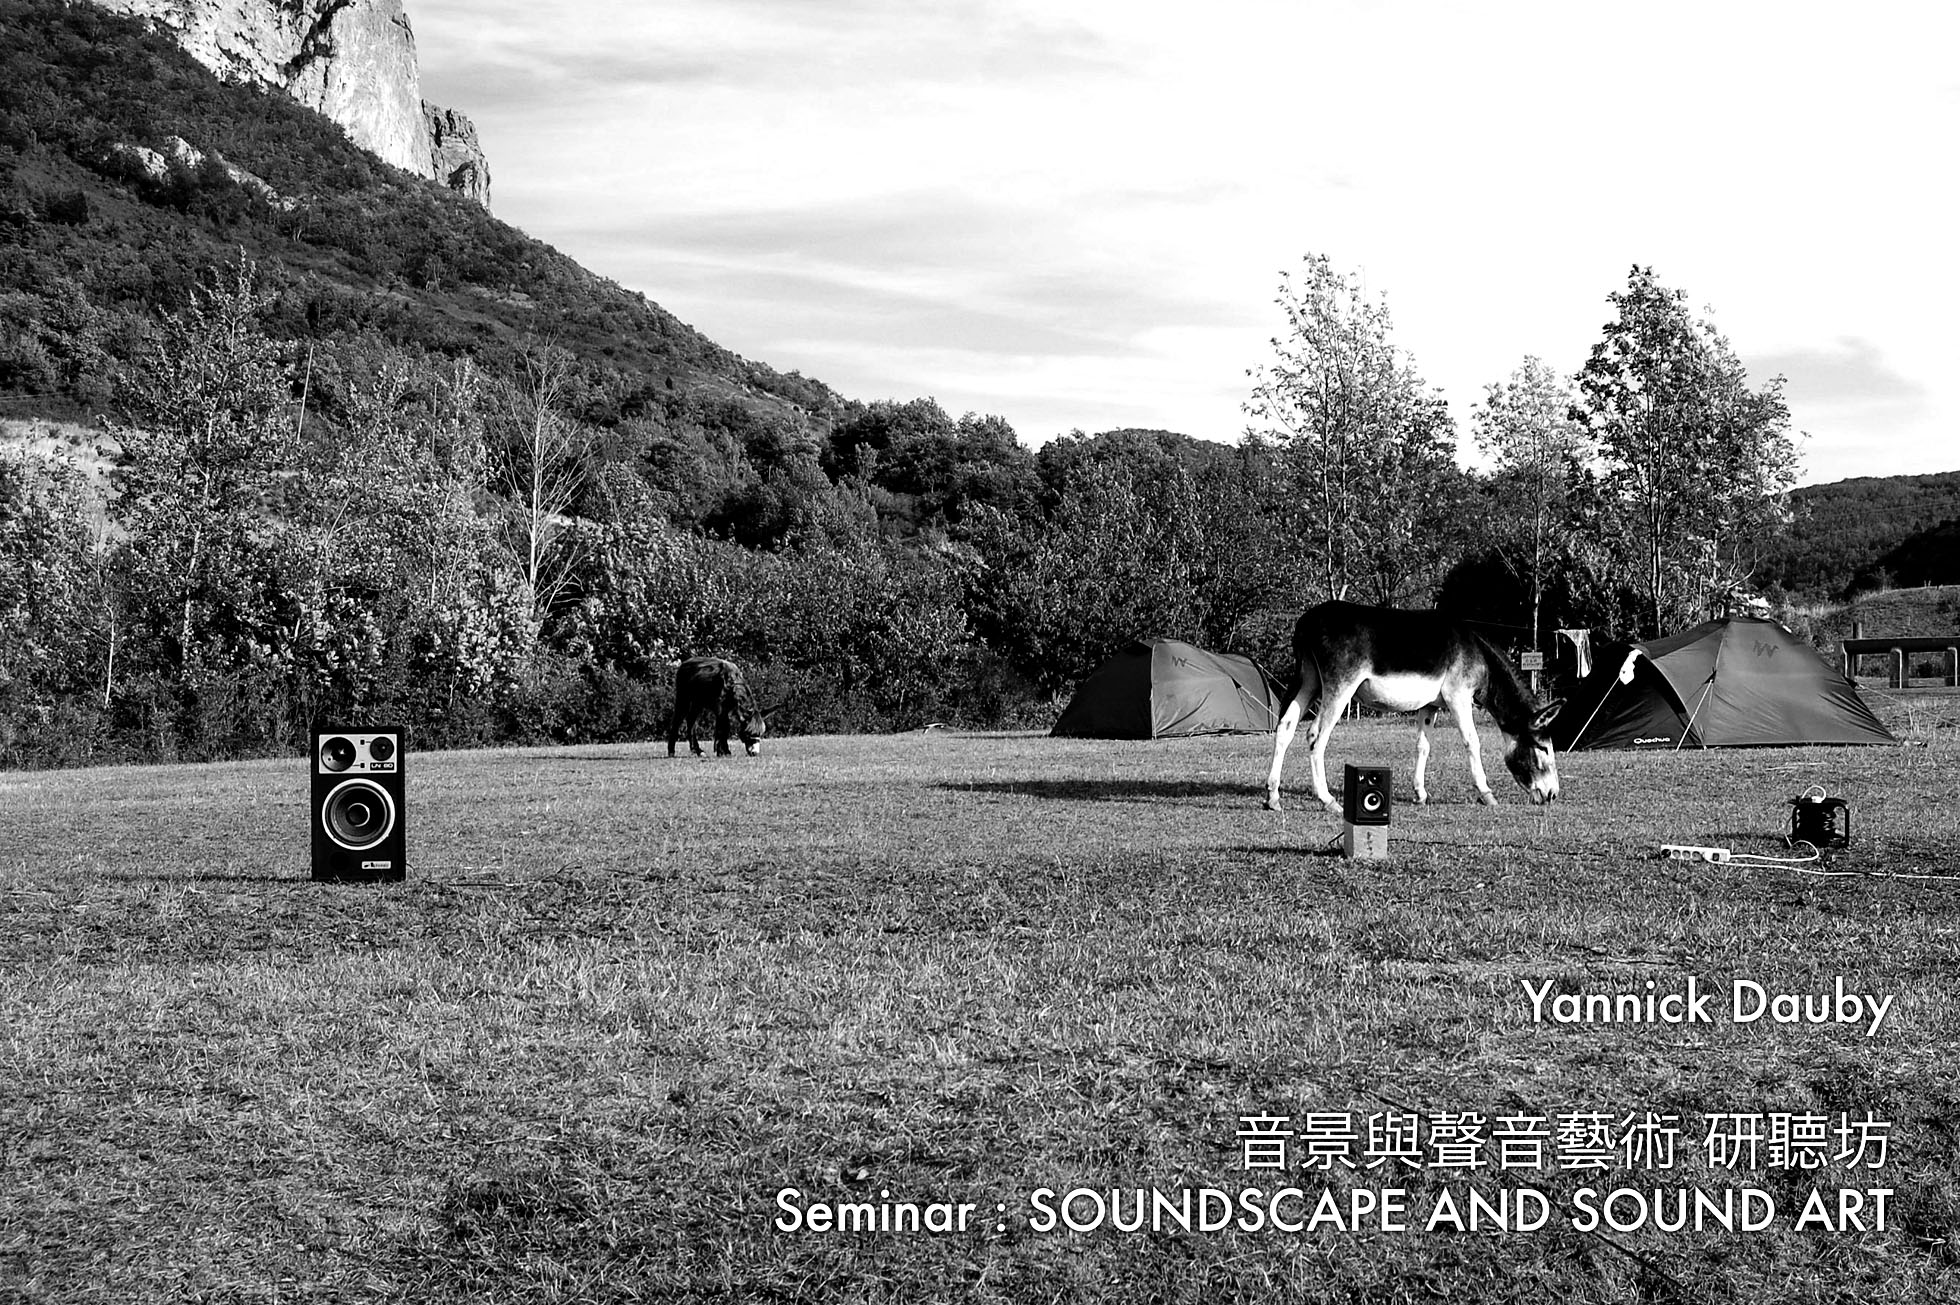 Yannick Dauby's Soundscape and Sound Art will kick off at the Taipei Artist Village on December 29.